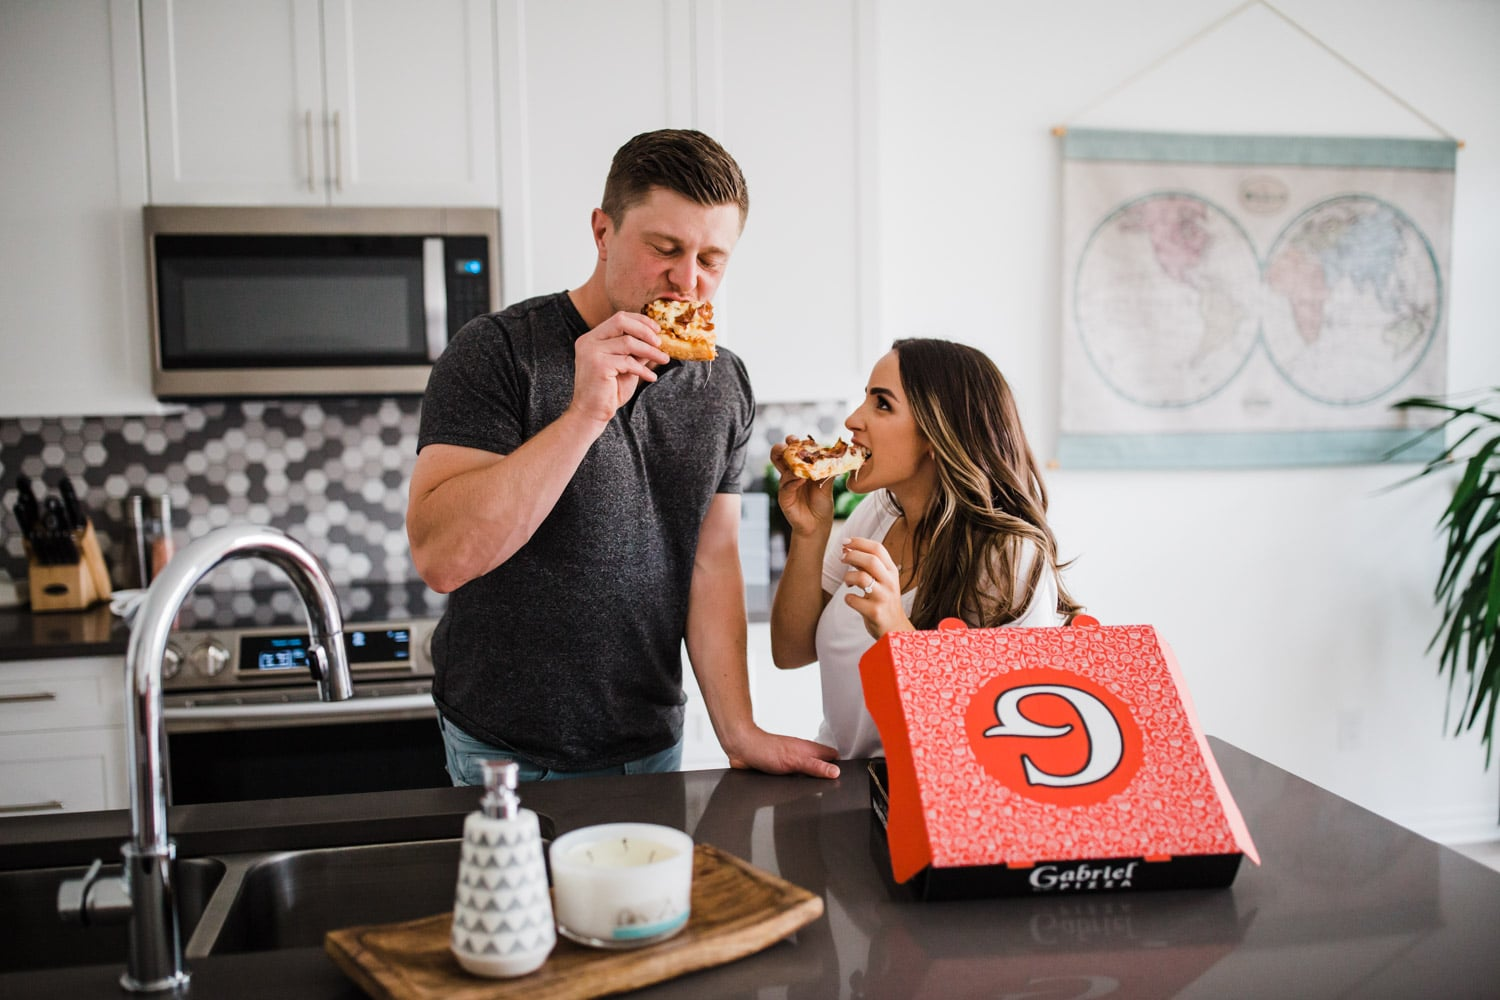 couple eat pizza together in kitchen - ottawa engagement photographer